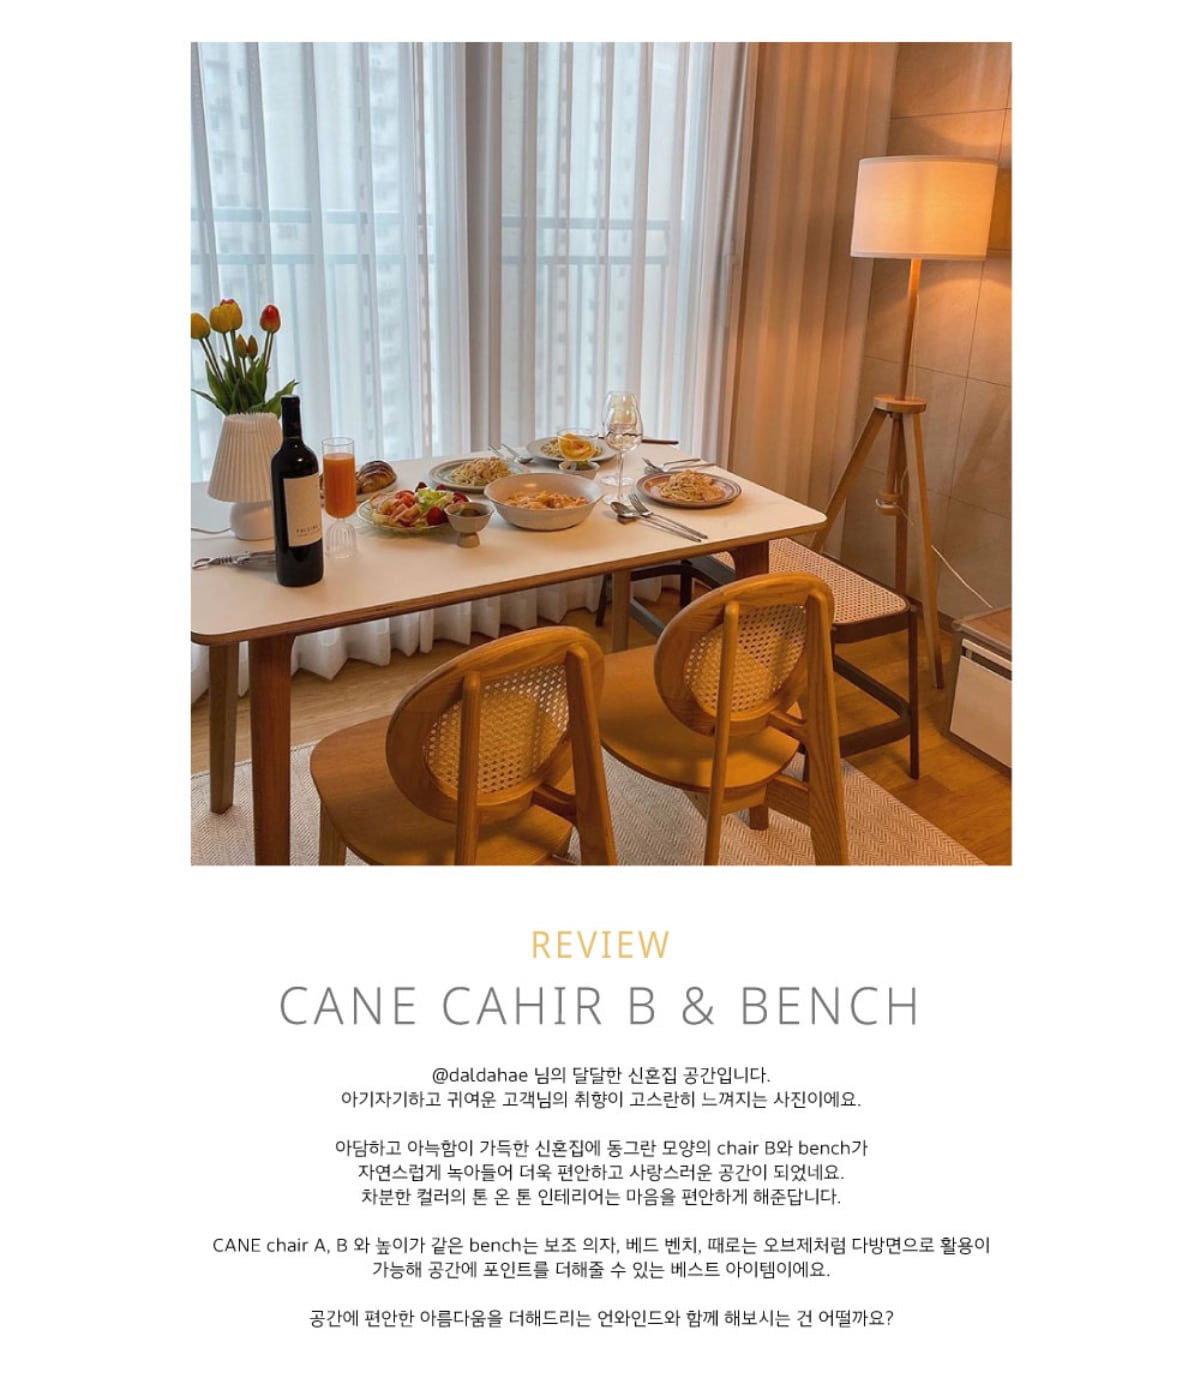 CANE chair B & bench